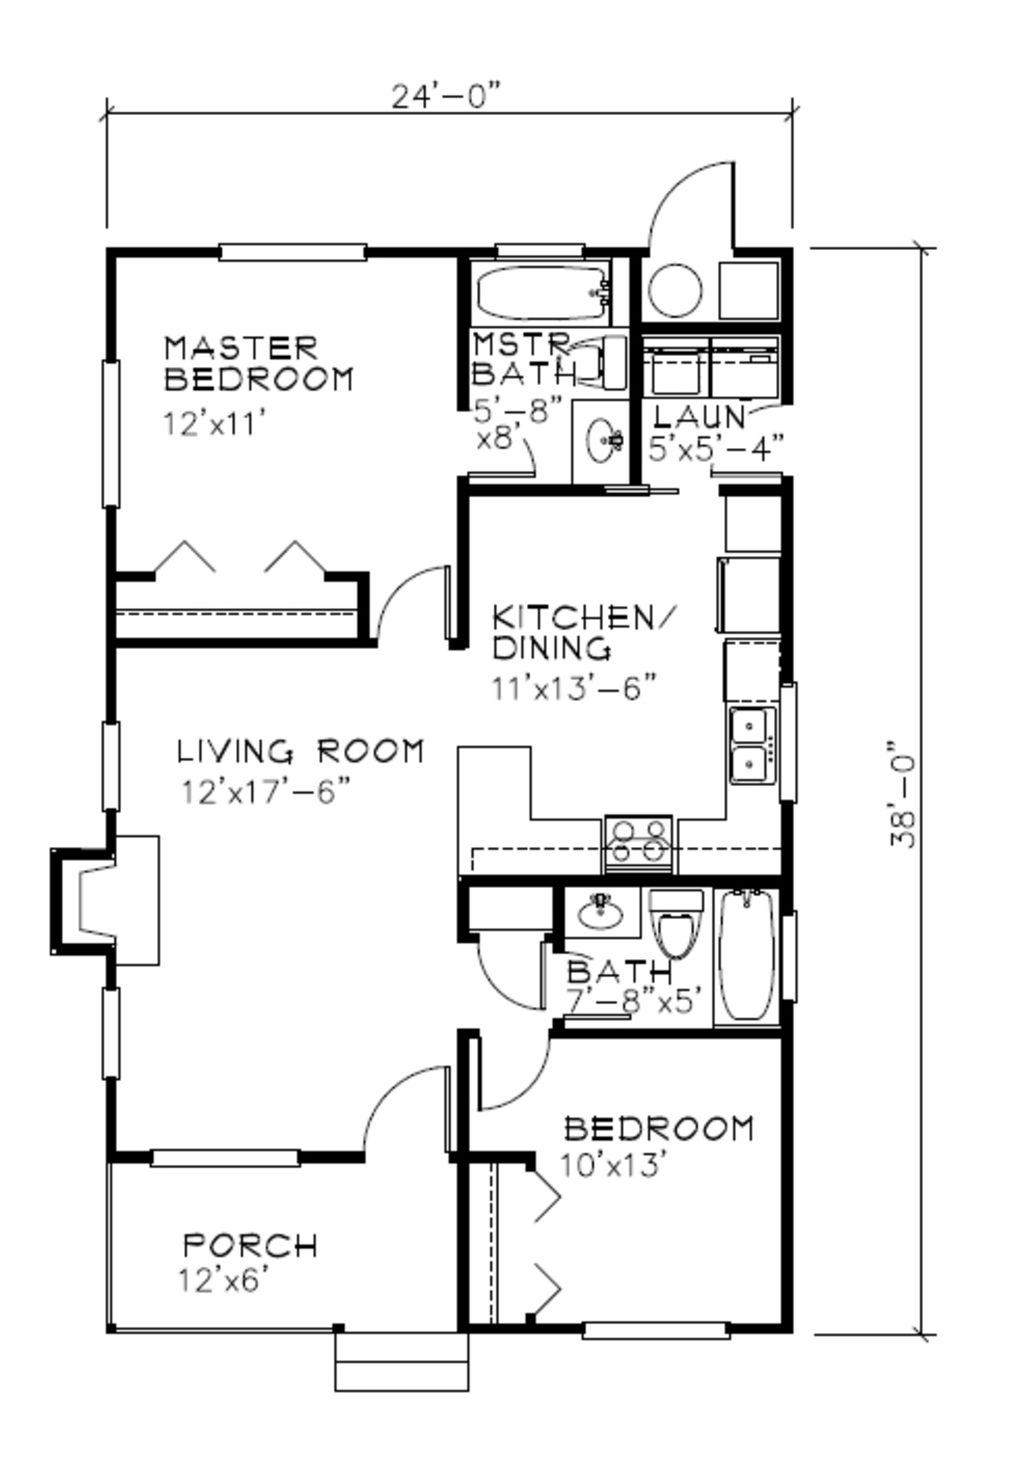 Cottage Style House Plan 2 Beds 2 Baths 838 Sq Ft Plan 515 18 Tiny House Plans Small House Plans Cottage Style House Plans